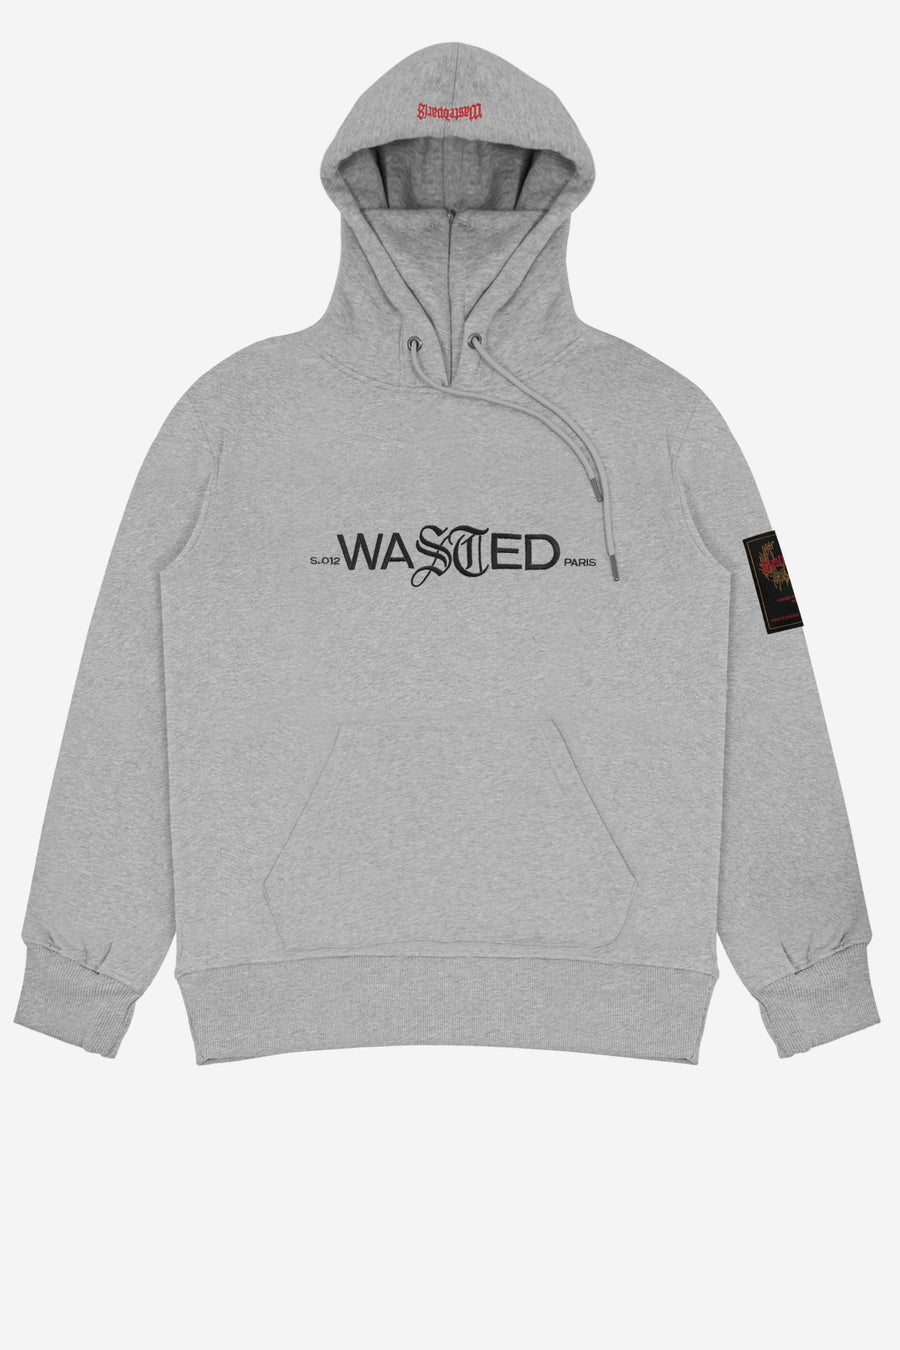 Hoodie Essentiel Gris Chiné SS21 - WASTED PARIS